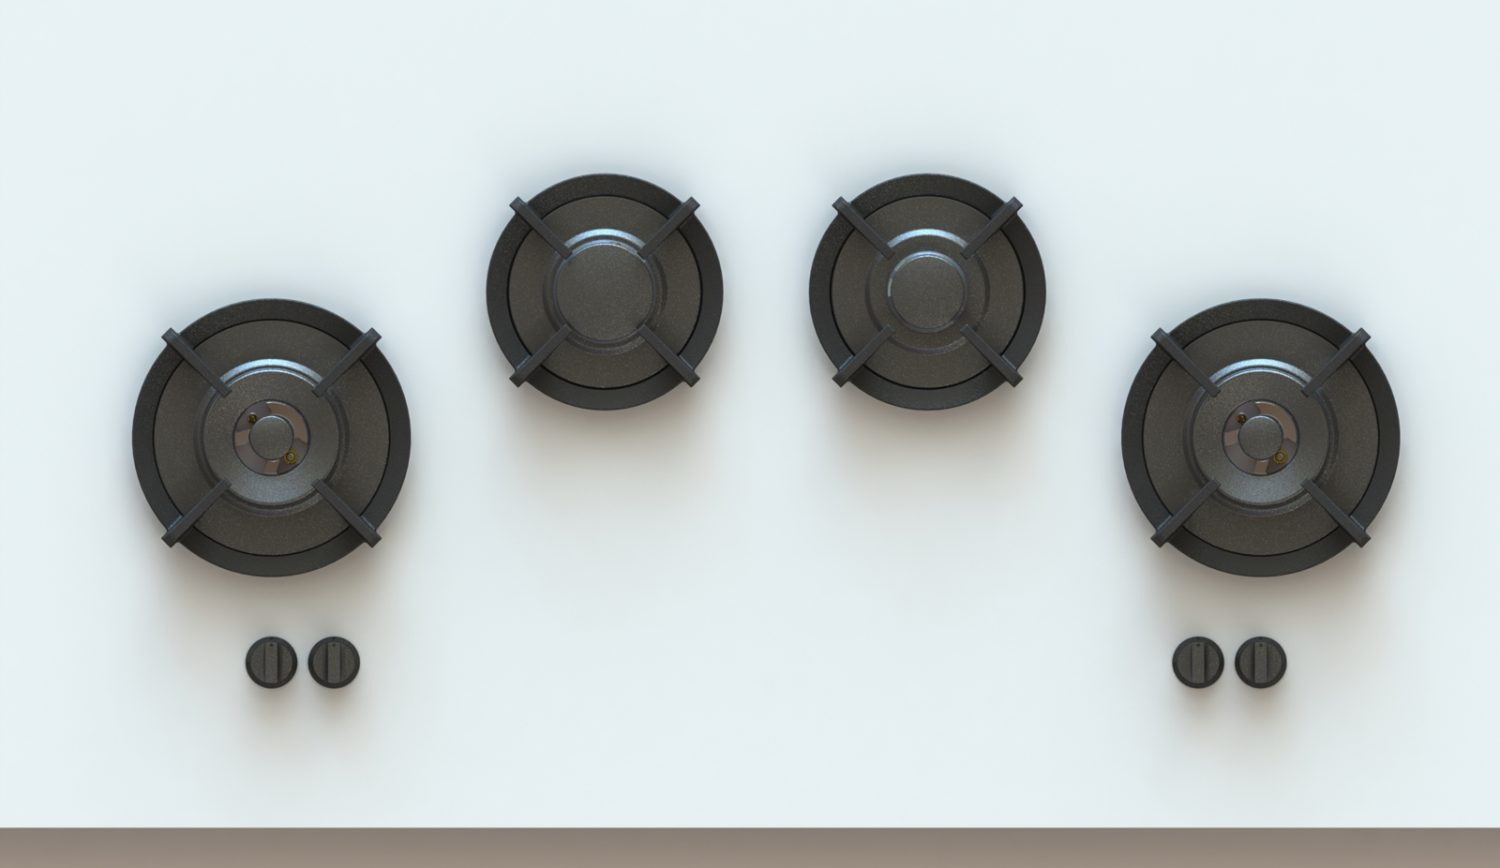 PITT-cooking-4-burners-Drum-Above-1500x868